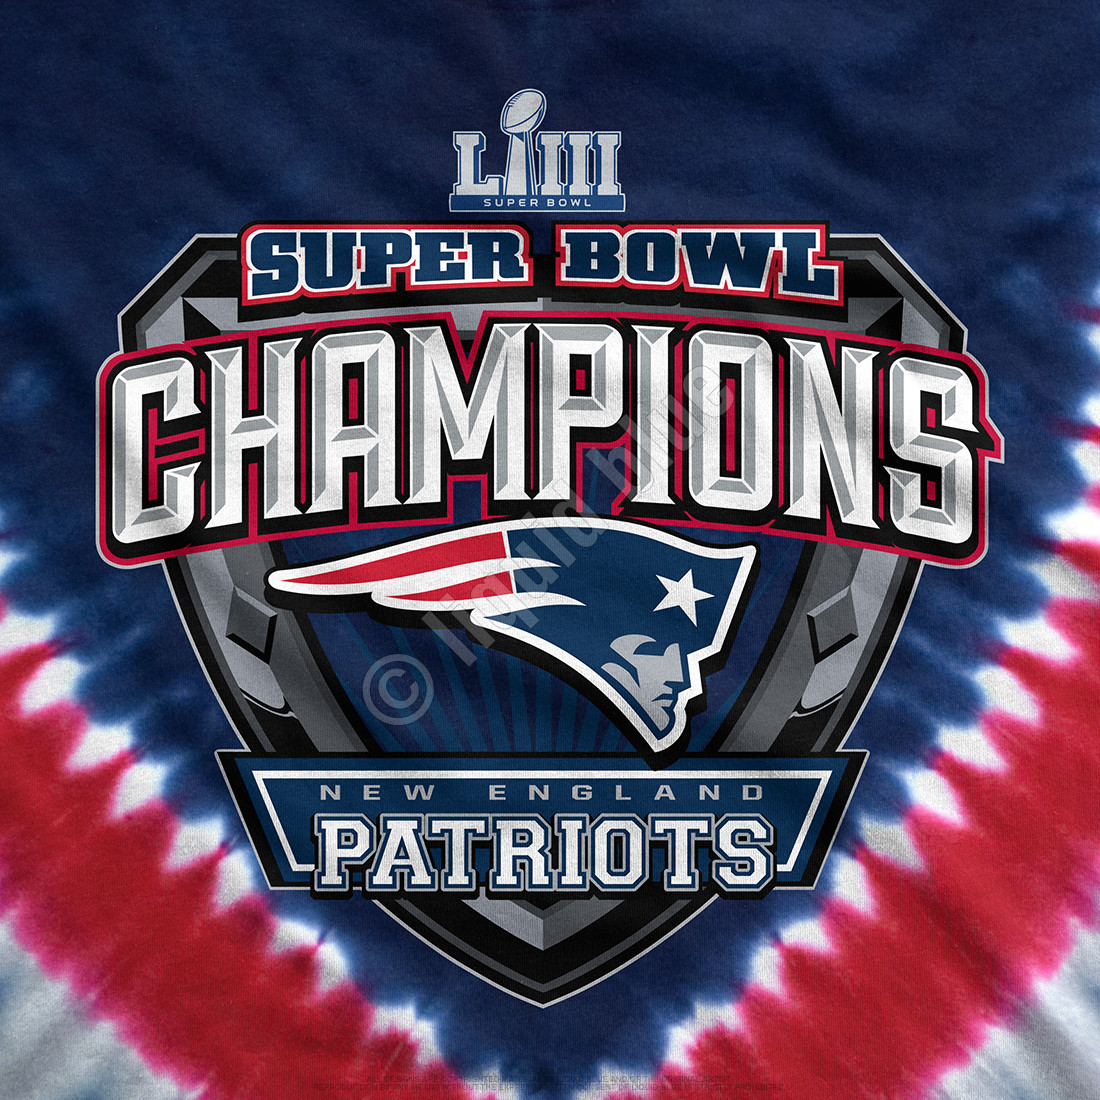 New England Patriots Super Bowl LIII Champions Tie-Dye T-Shirt Clearance 50% OFF